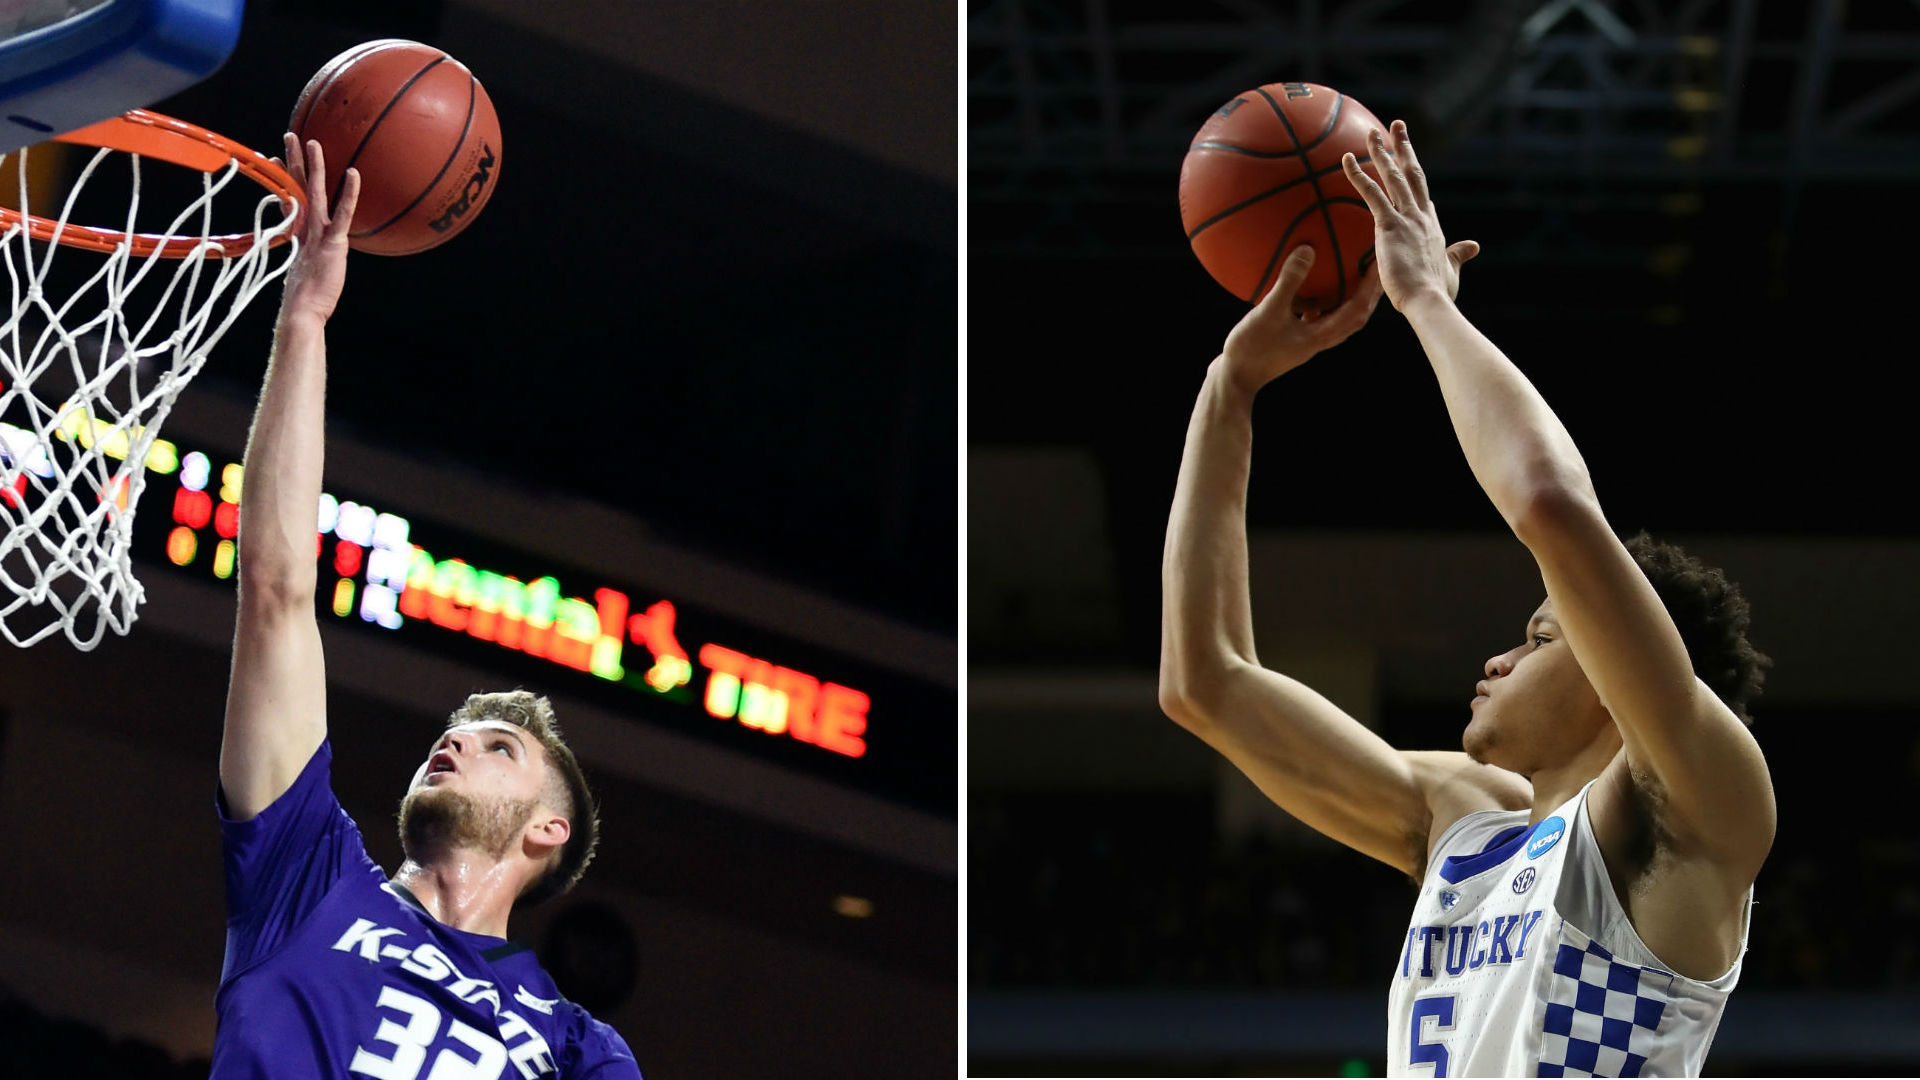 Kentucky Wildcats Basketball 2018 Sec Matchups Revealed: March Madness 2018: Kentucky Vs. Kansas State Sweet 16